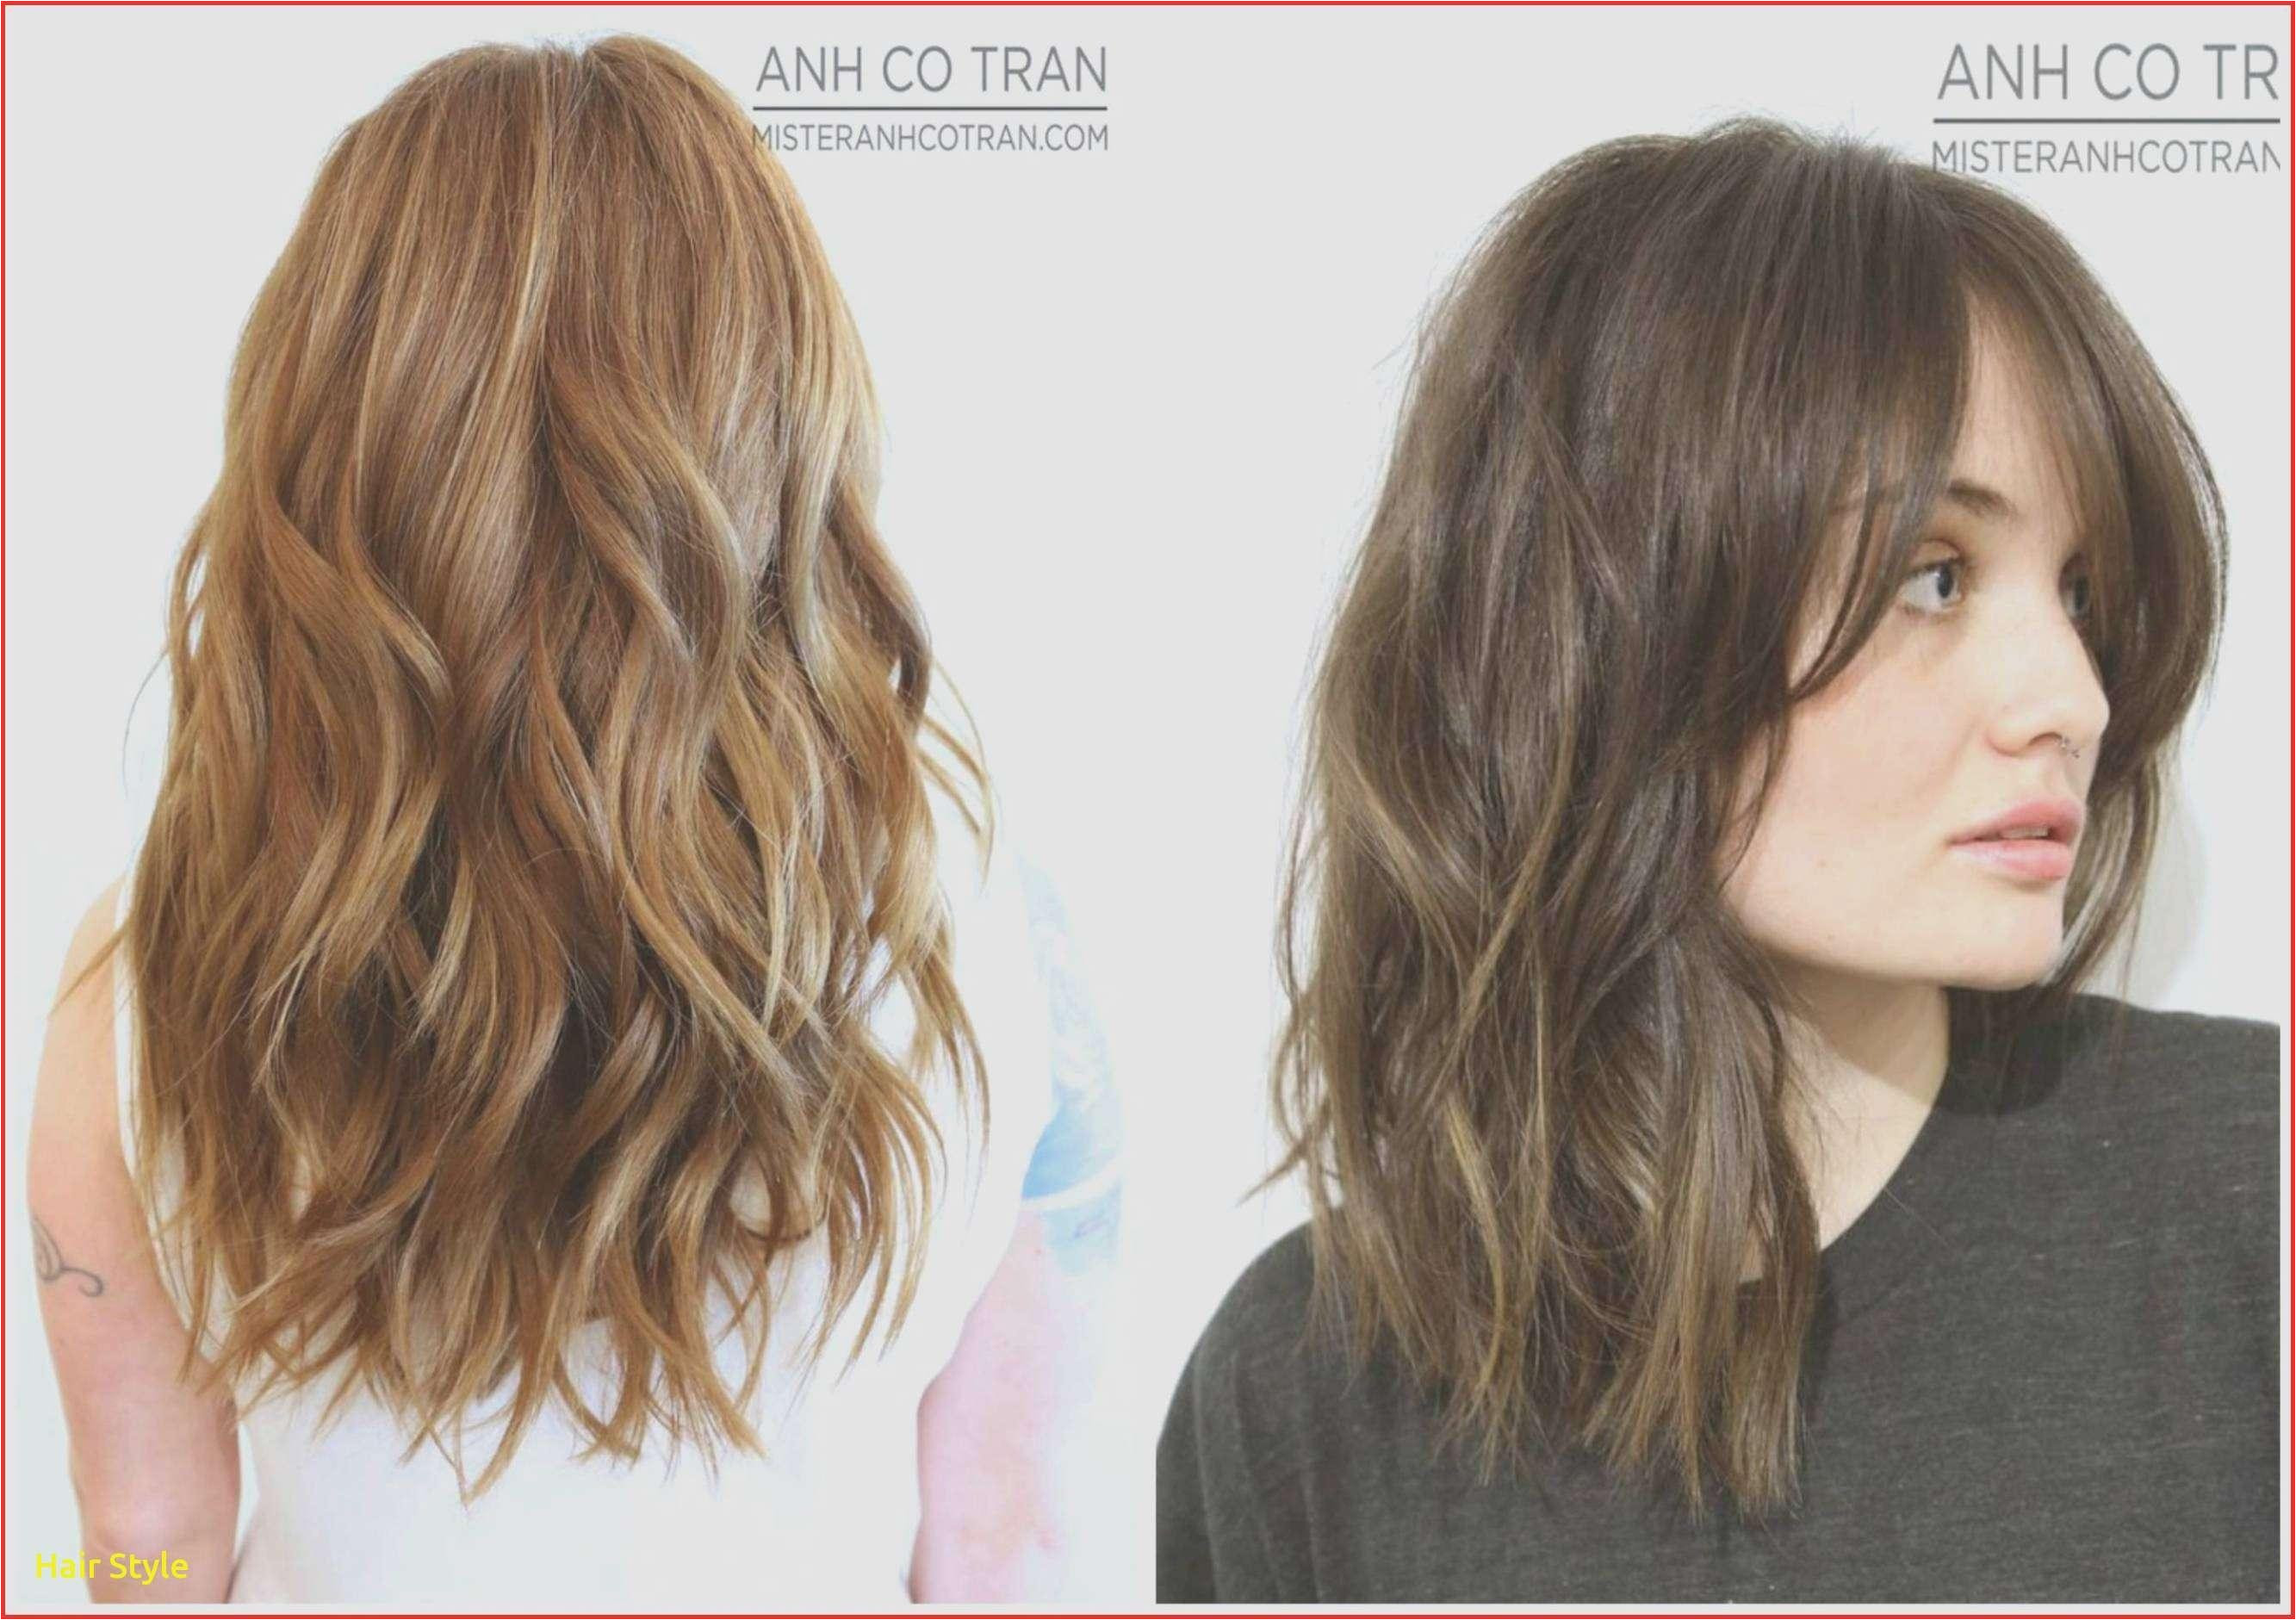 Different Hairstyles Girls New Hairstyle Cutting Name Best Haircut Names All Hairstyle